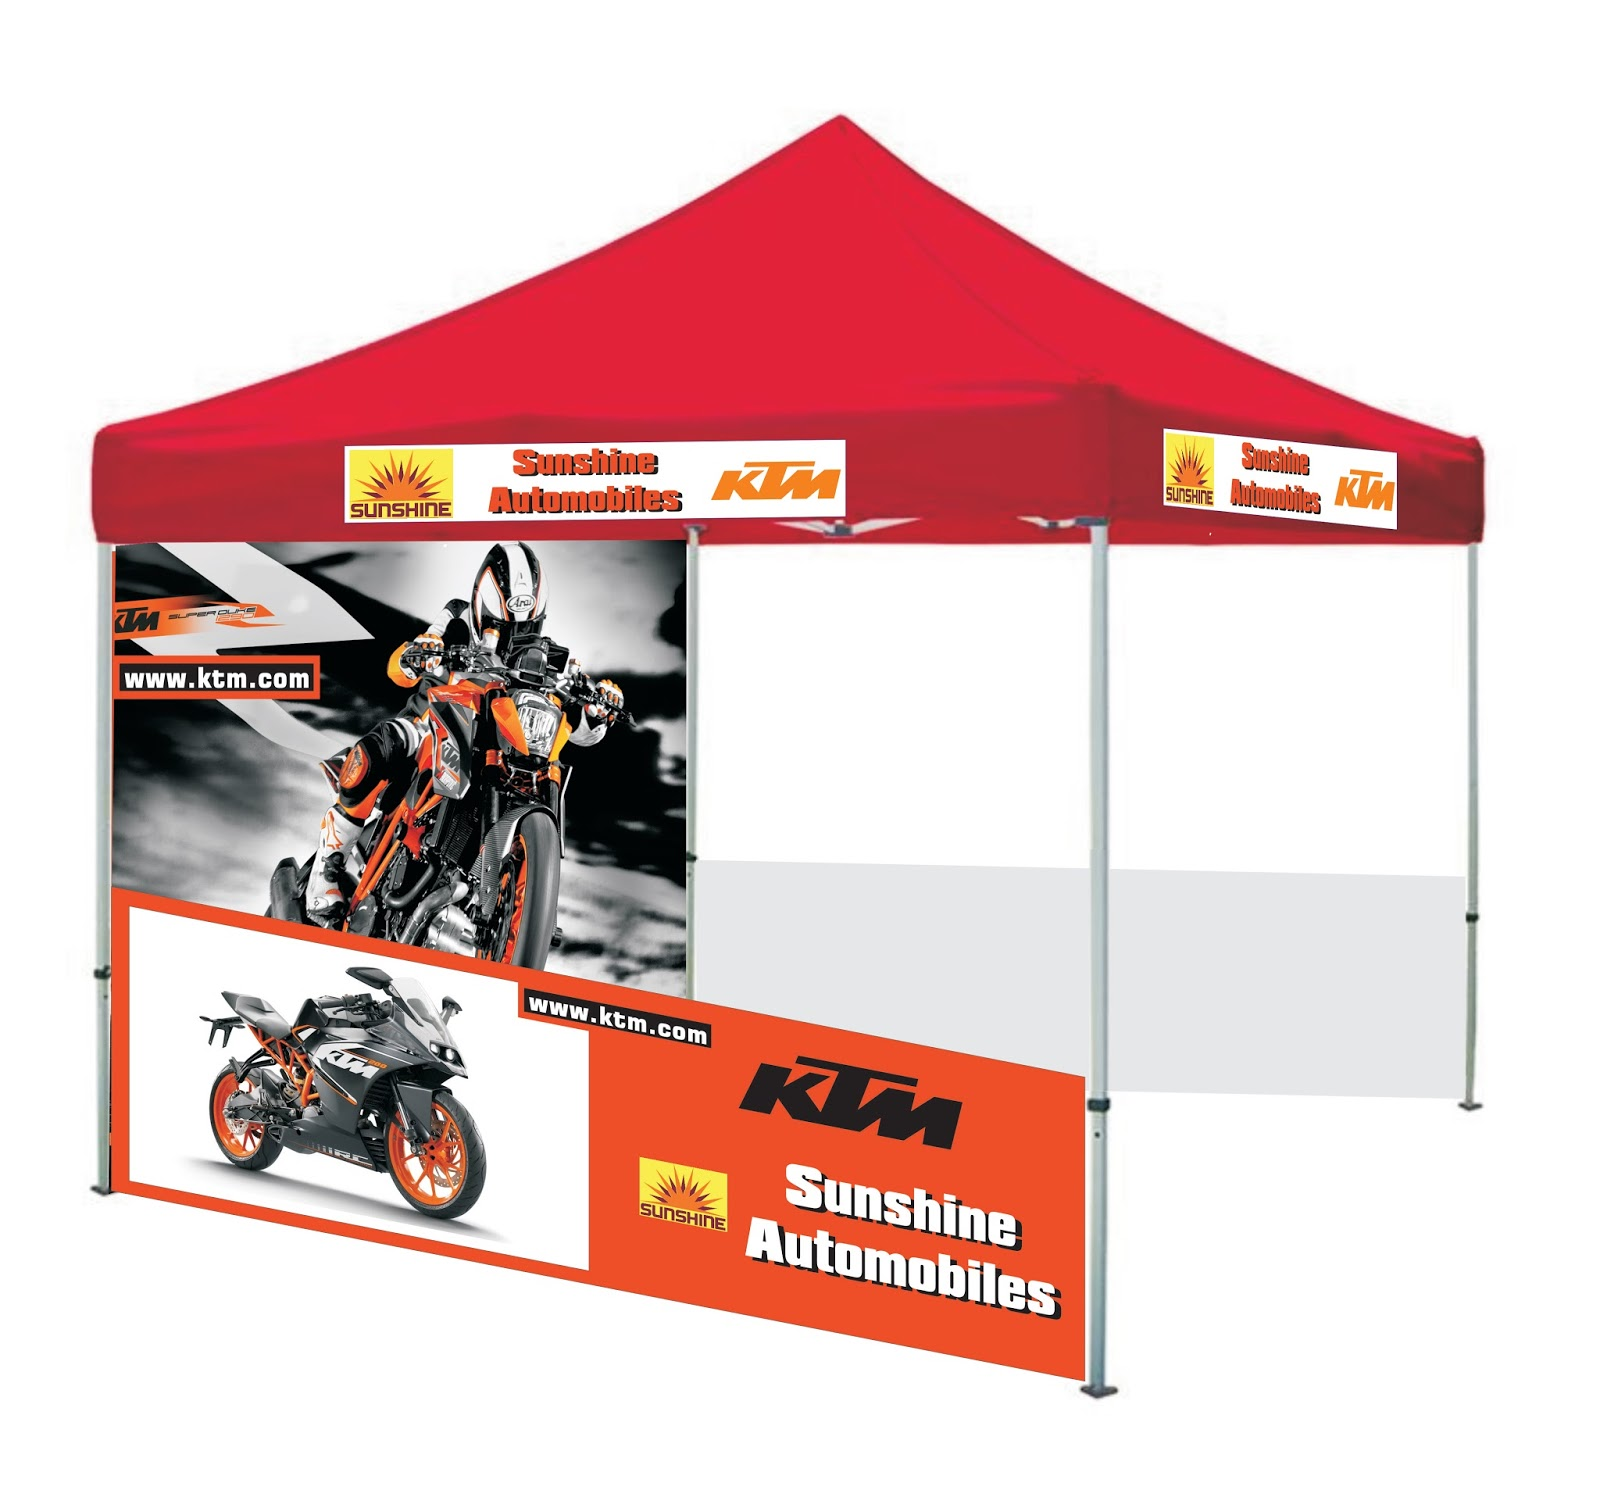 KTM Dealer Marketing Products Demo Tents and Publicity products suppliers in India at low price with best quality call 91 9246372692  sc 1 st  KTM Dealer & KTM Dealer - Marketing Products and Advertising Best Advertising ...